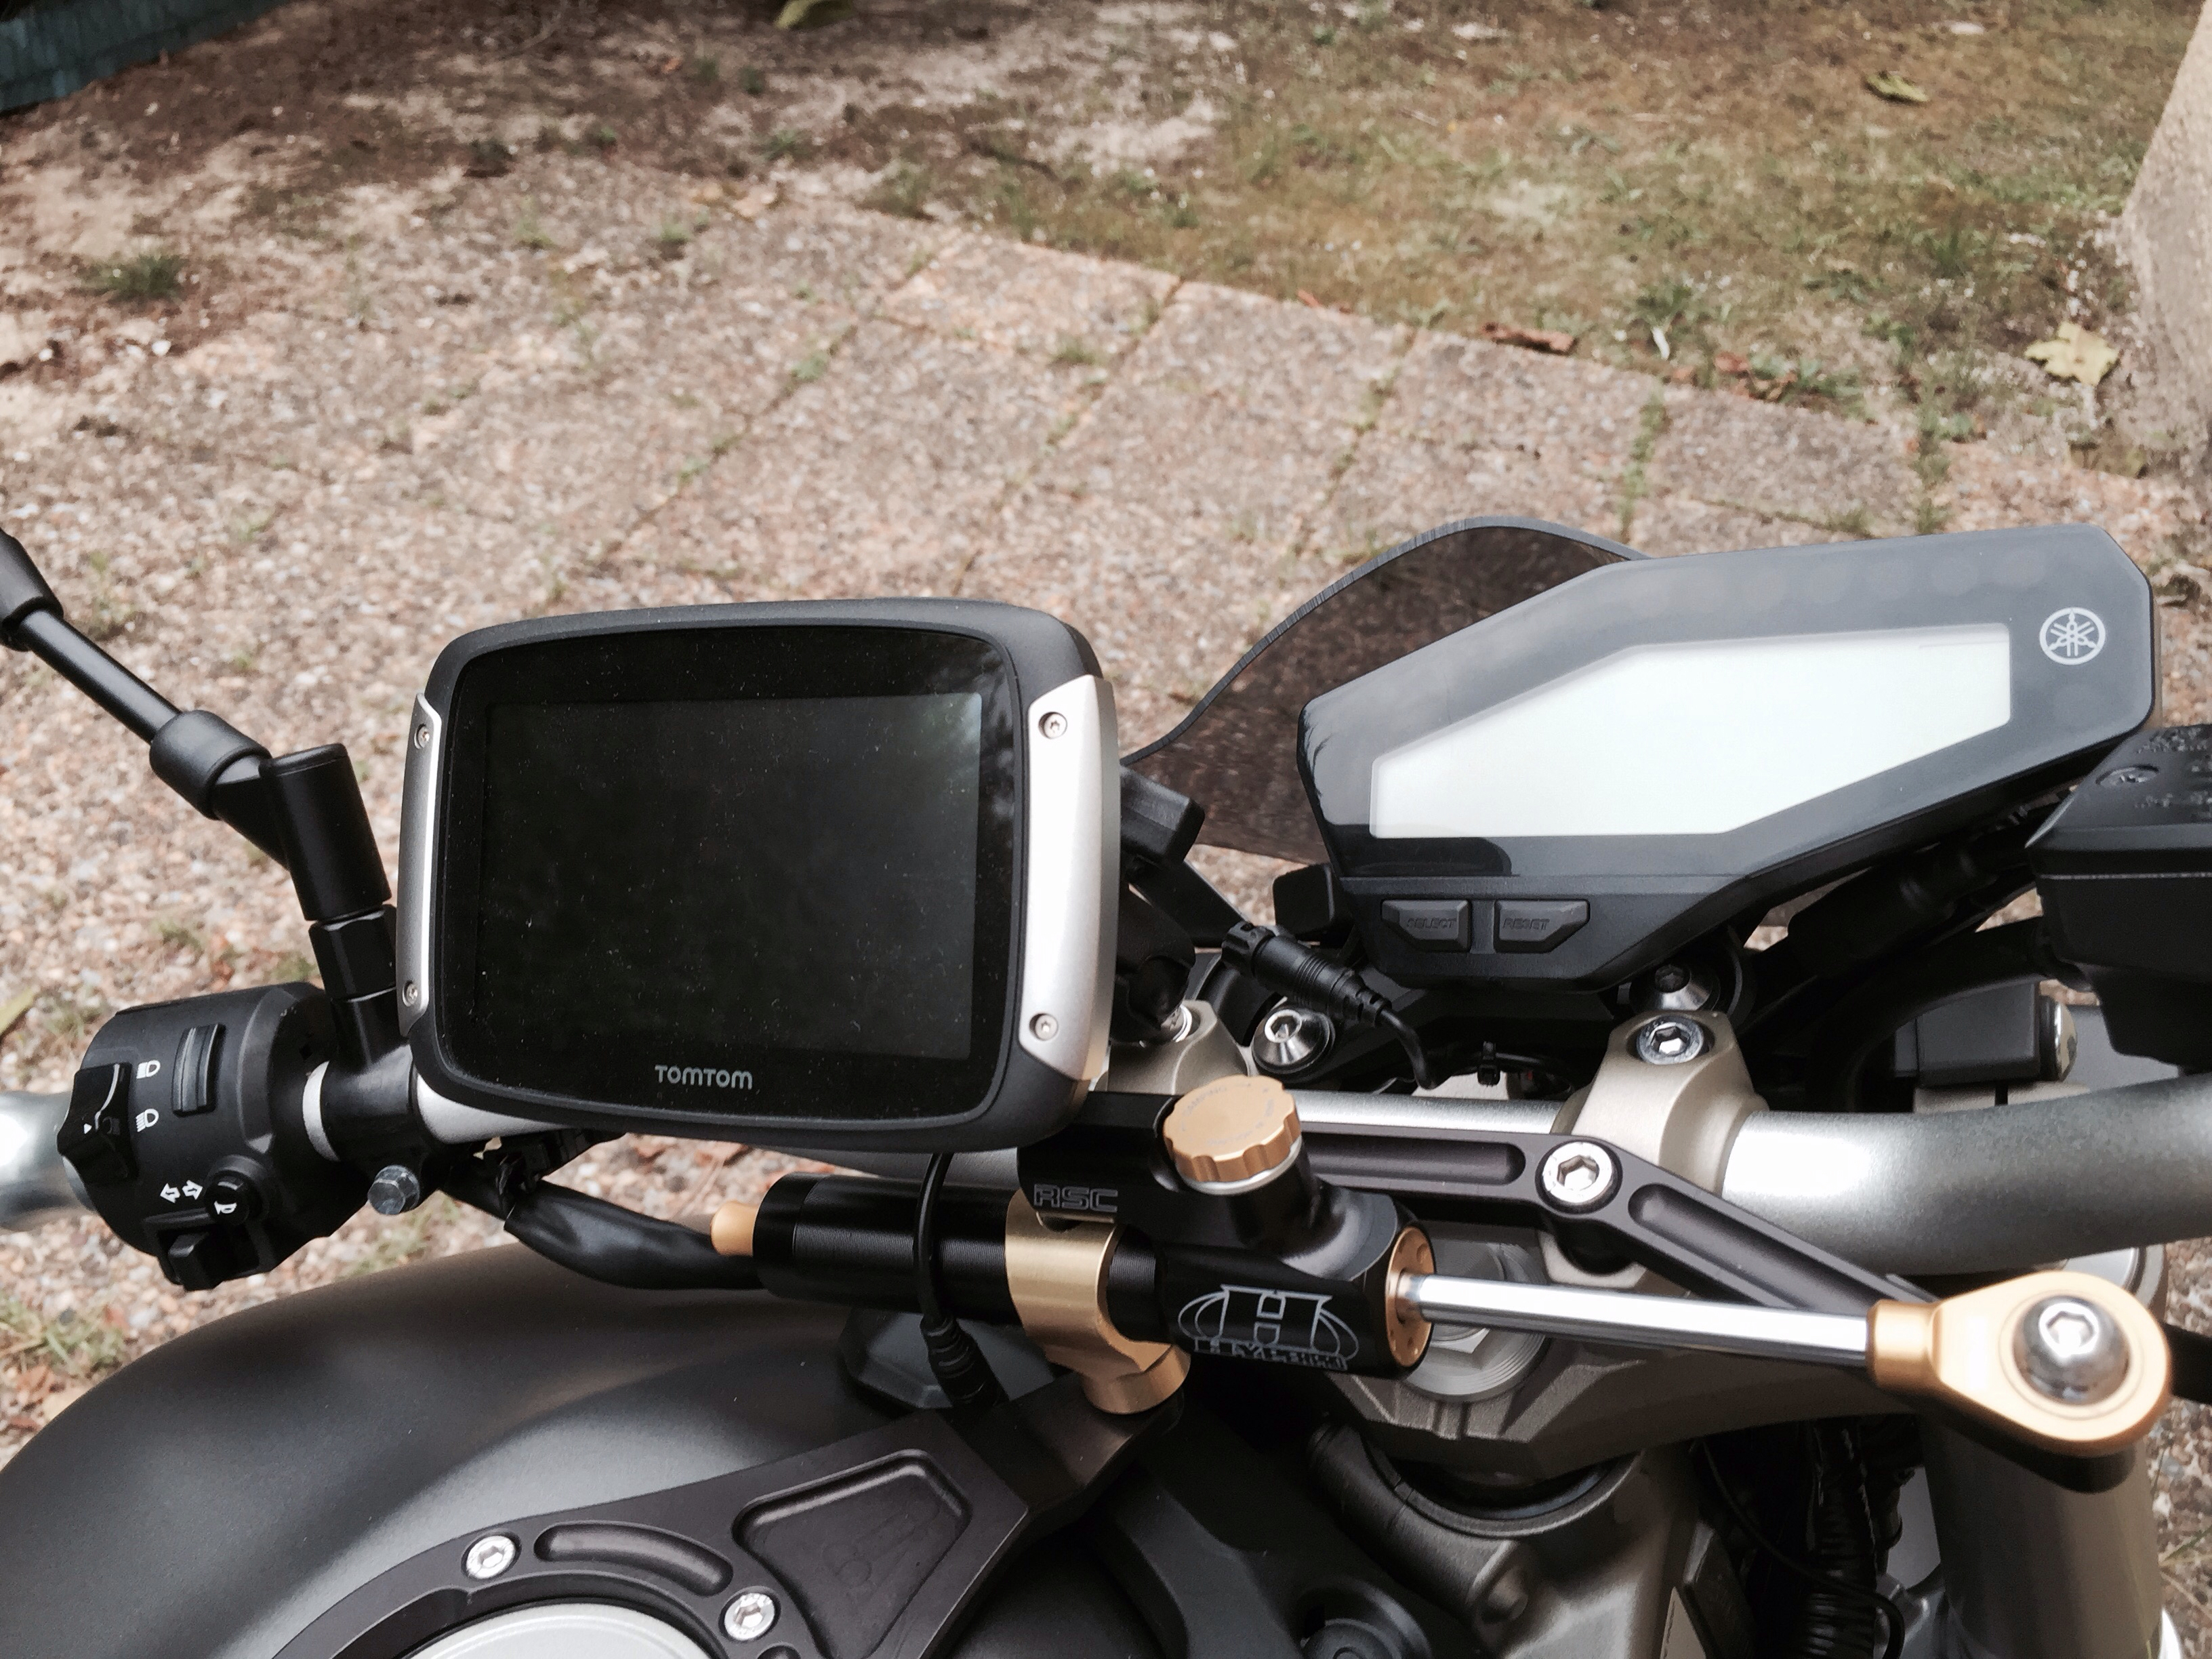 Support GPS Tomtom Rider / Fixation au compteur 1440694660-iphone-image-08-27-2015